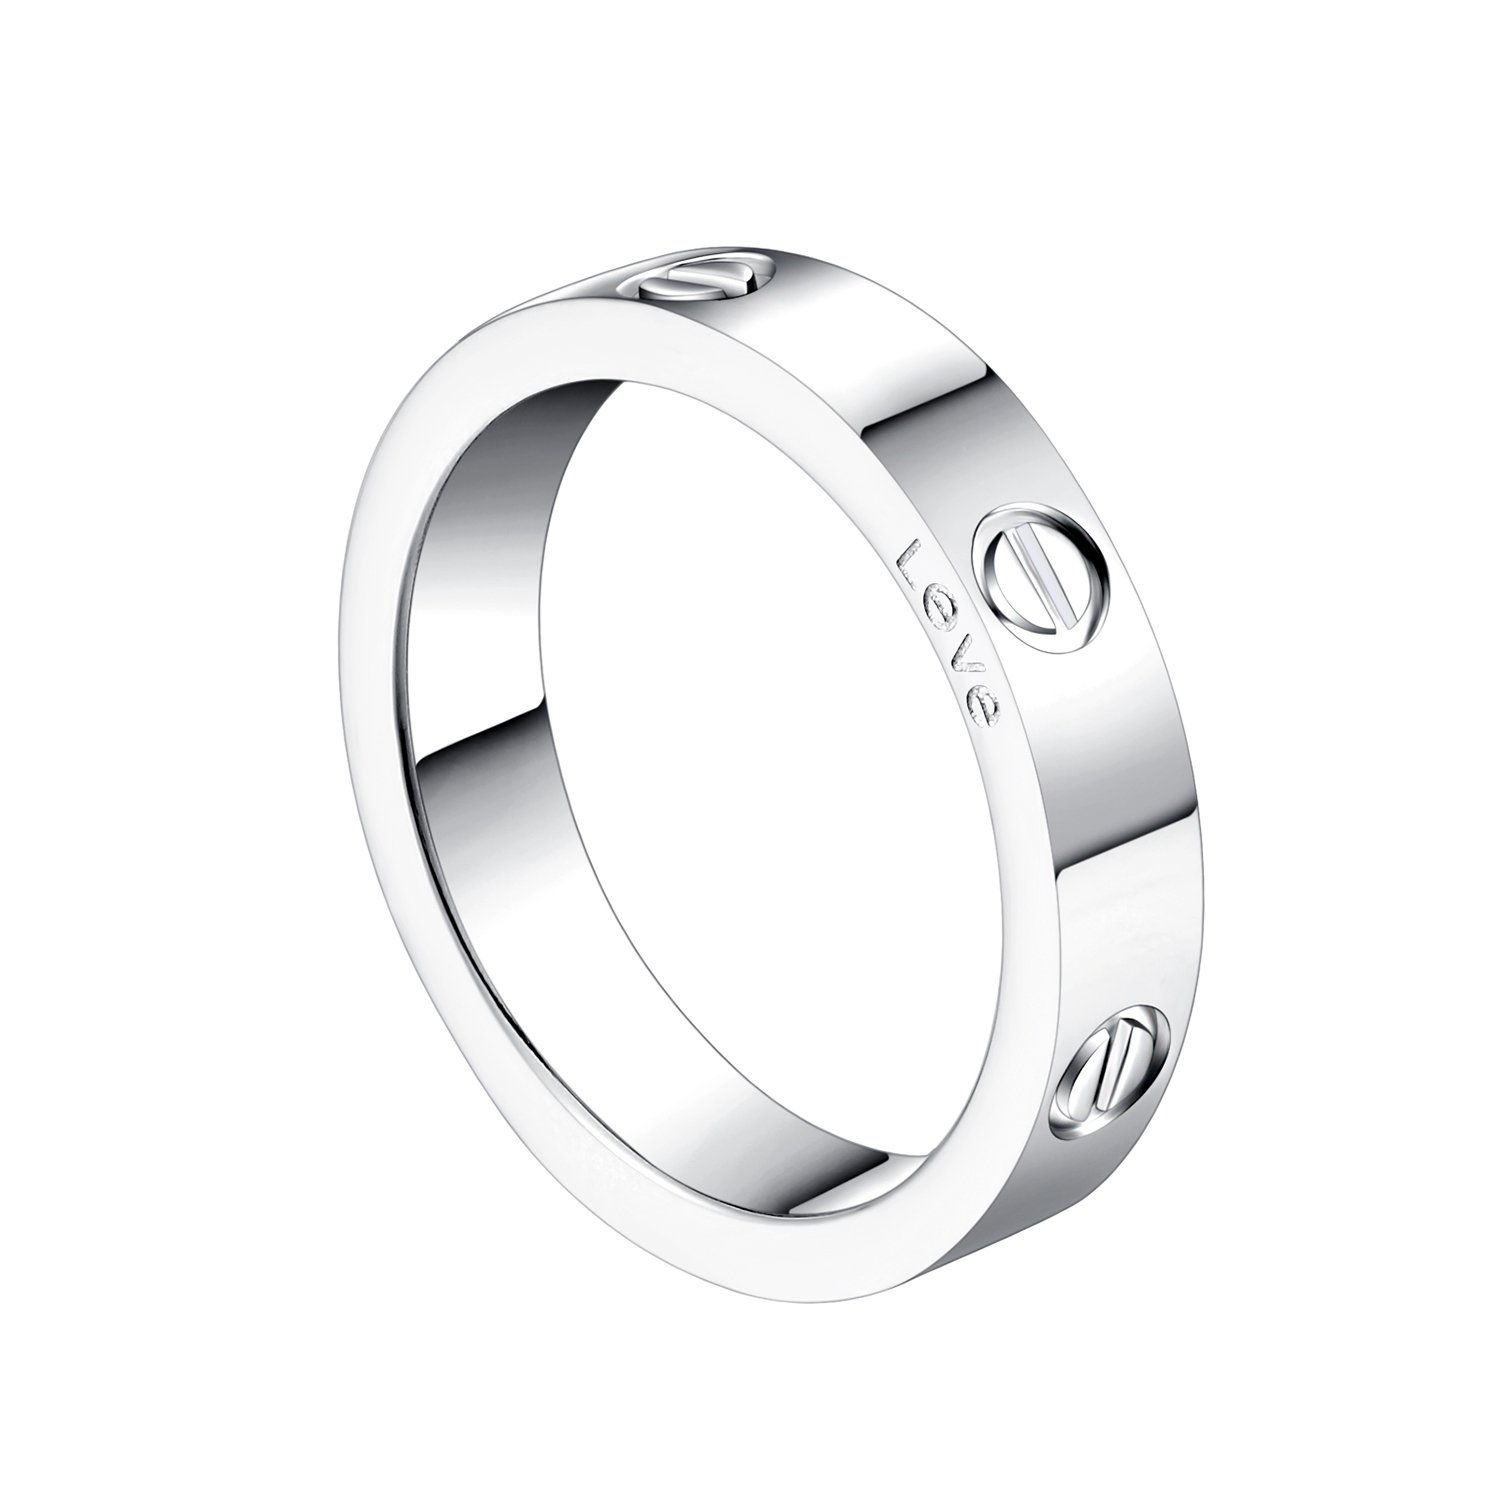 Z.RACLE 4mm Love Rings for women with Screw Design Best Gifts for love Sliver - 7